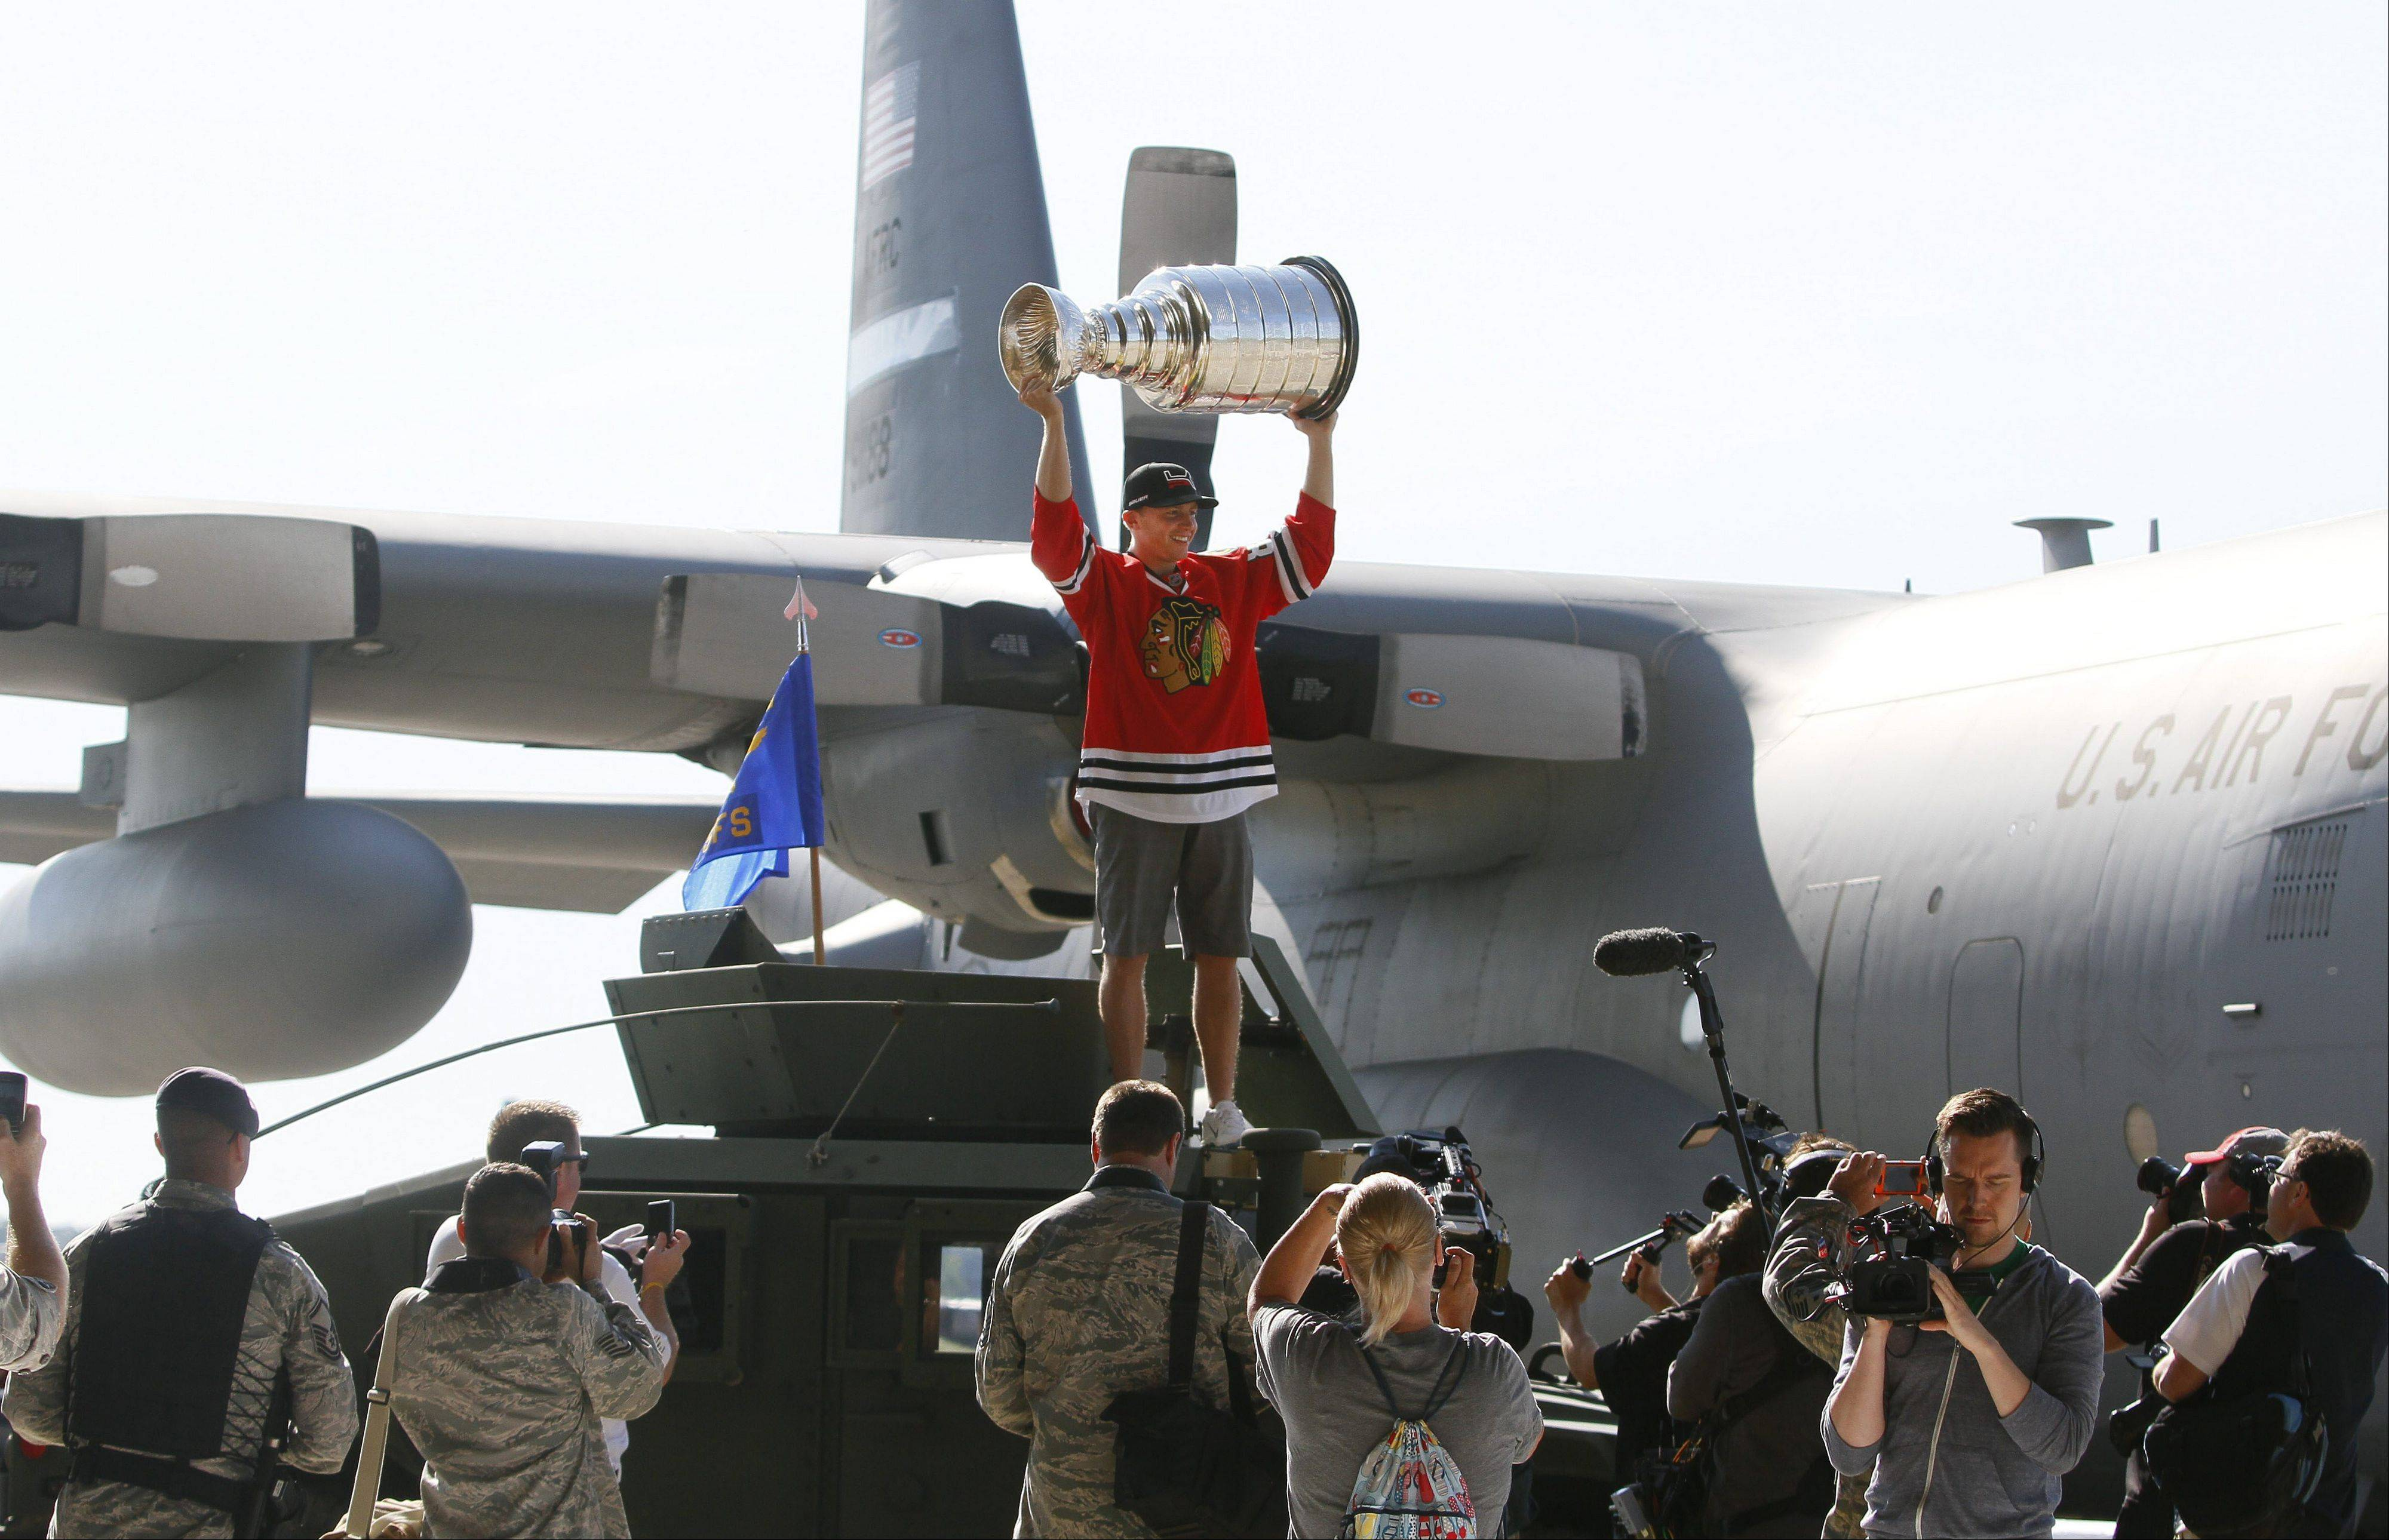 Blackhawks keeping Stanley Cup busy